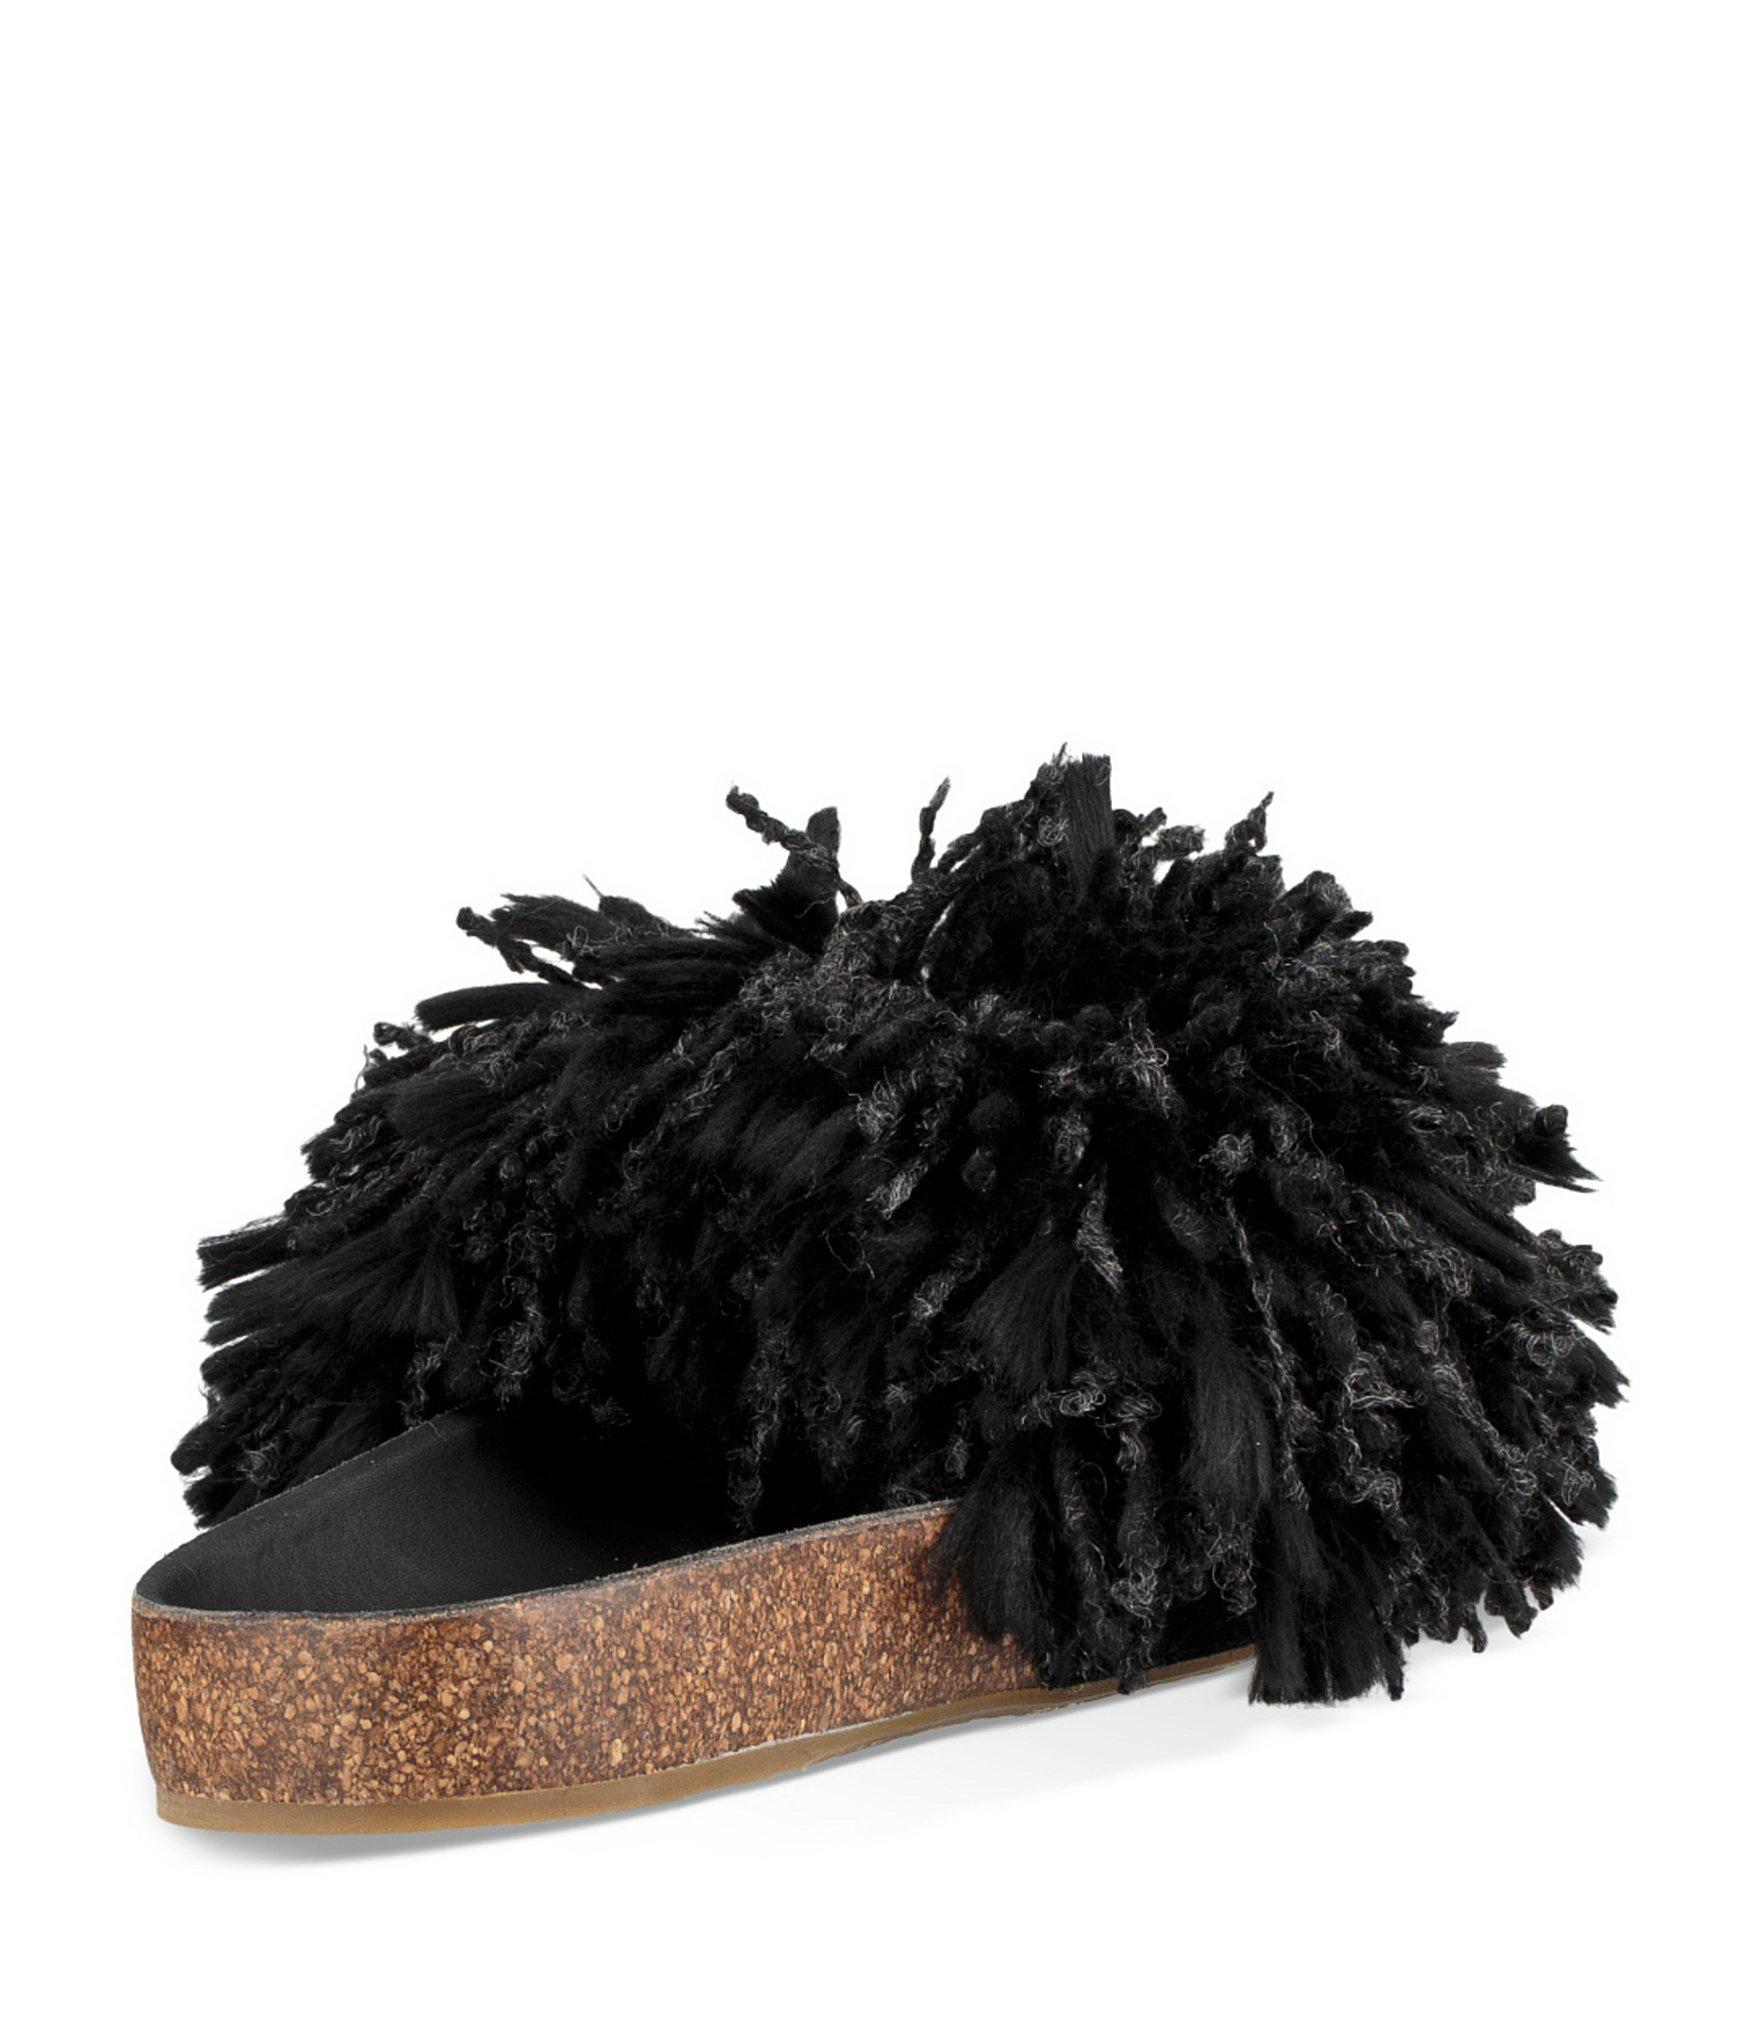 bbb1b0a6cf7 UGG Cindy Suede Yarn Fringe Slides in Black - Lyst